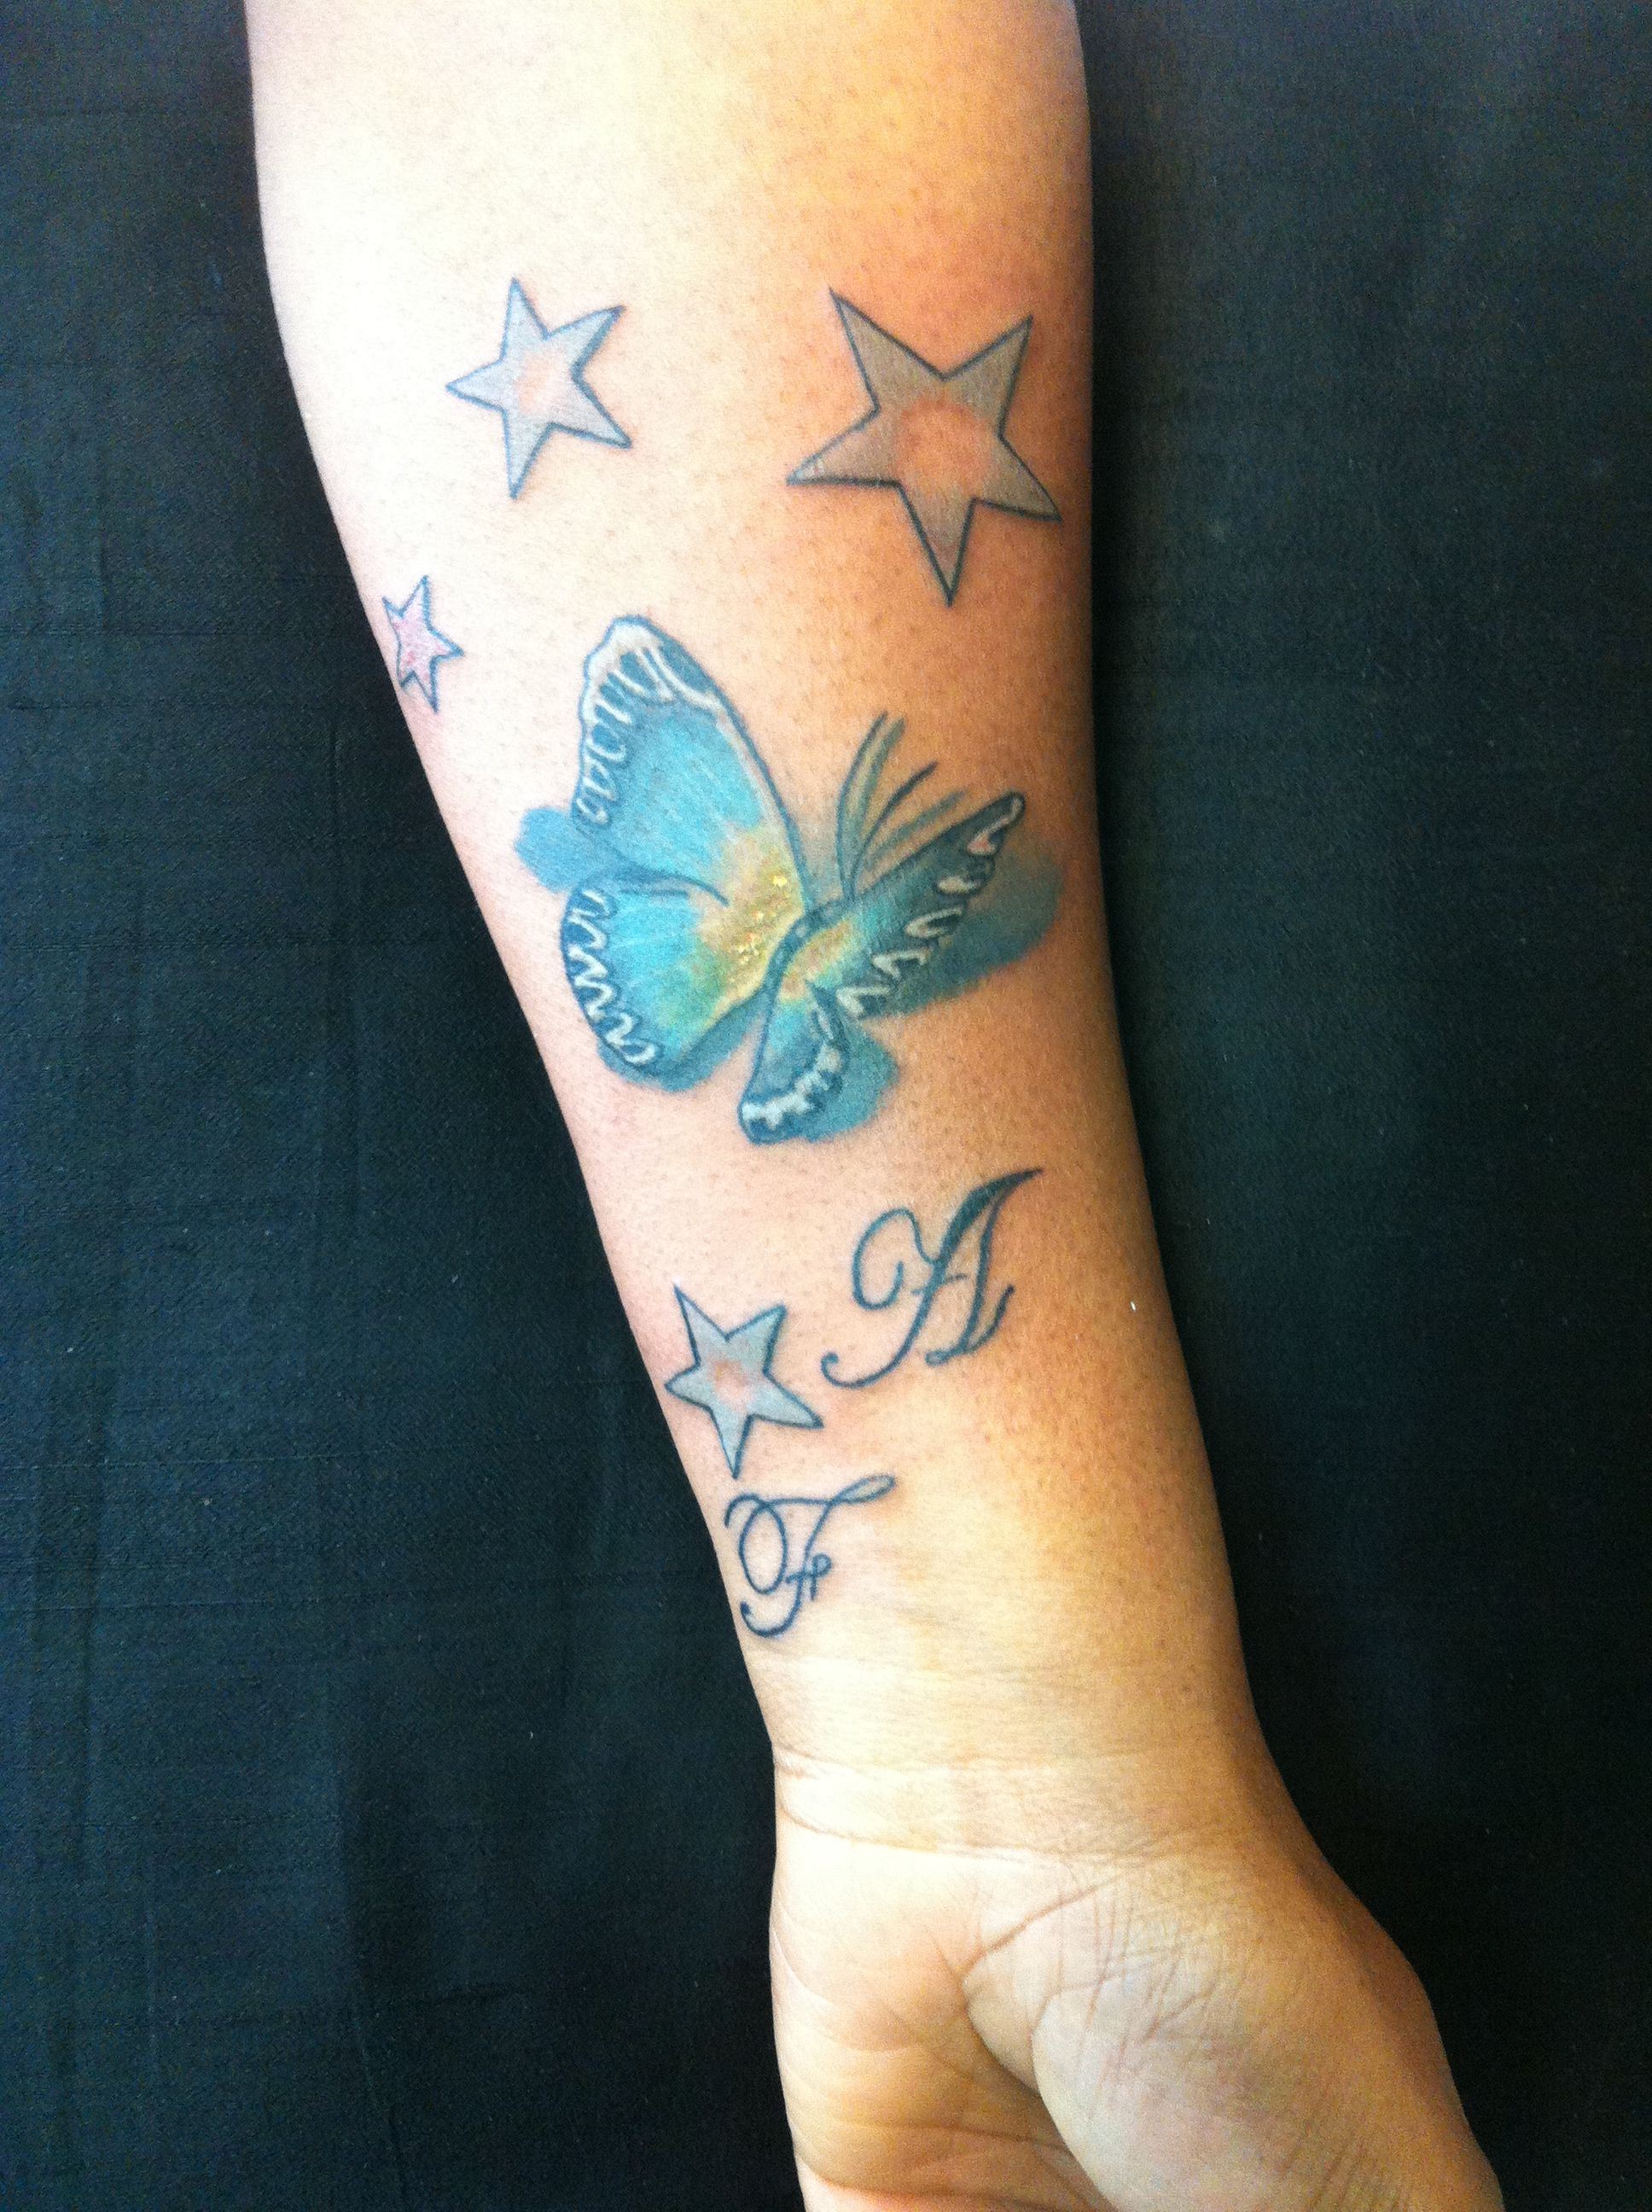 Stelle Iniziali E Farfalla Nadia Borderline Tattoo Studio